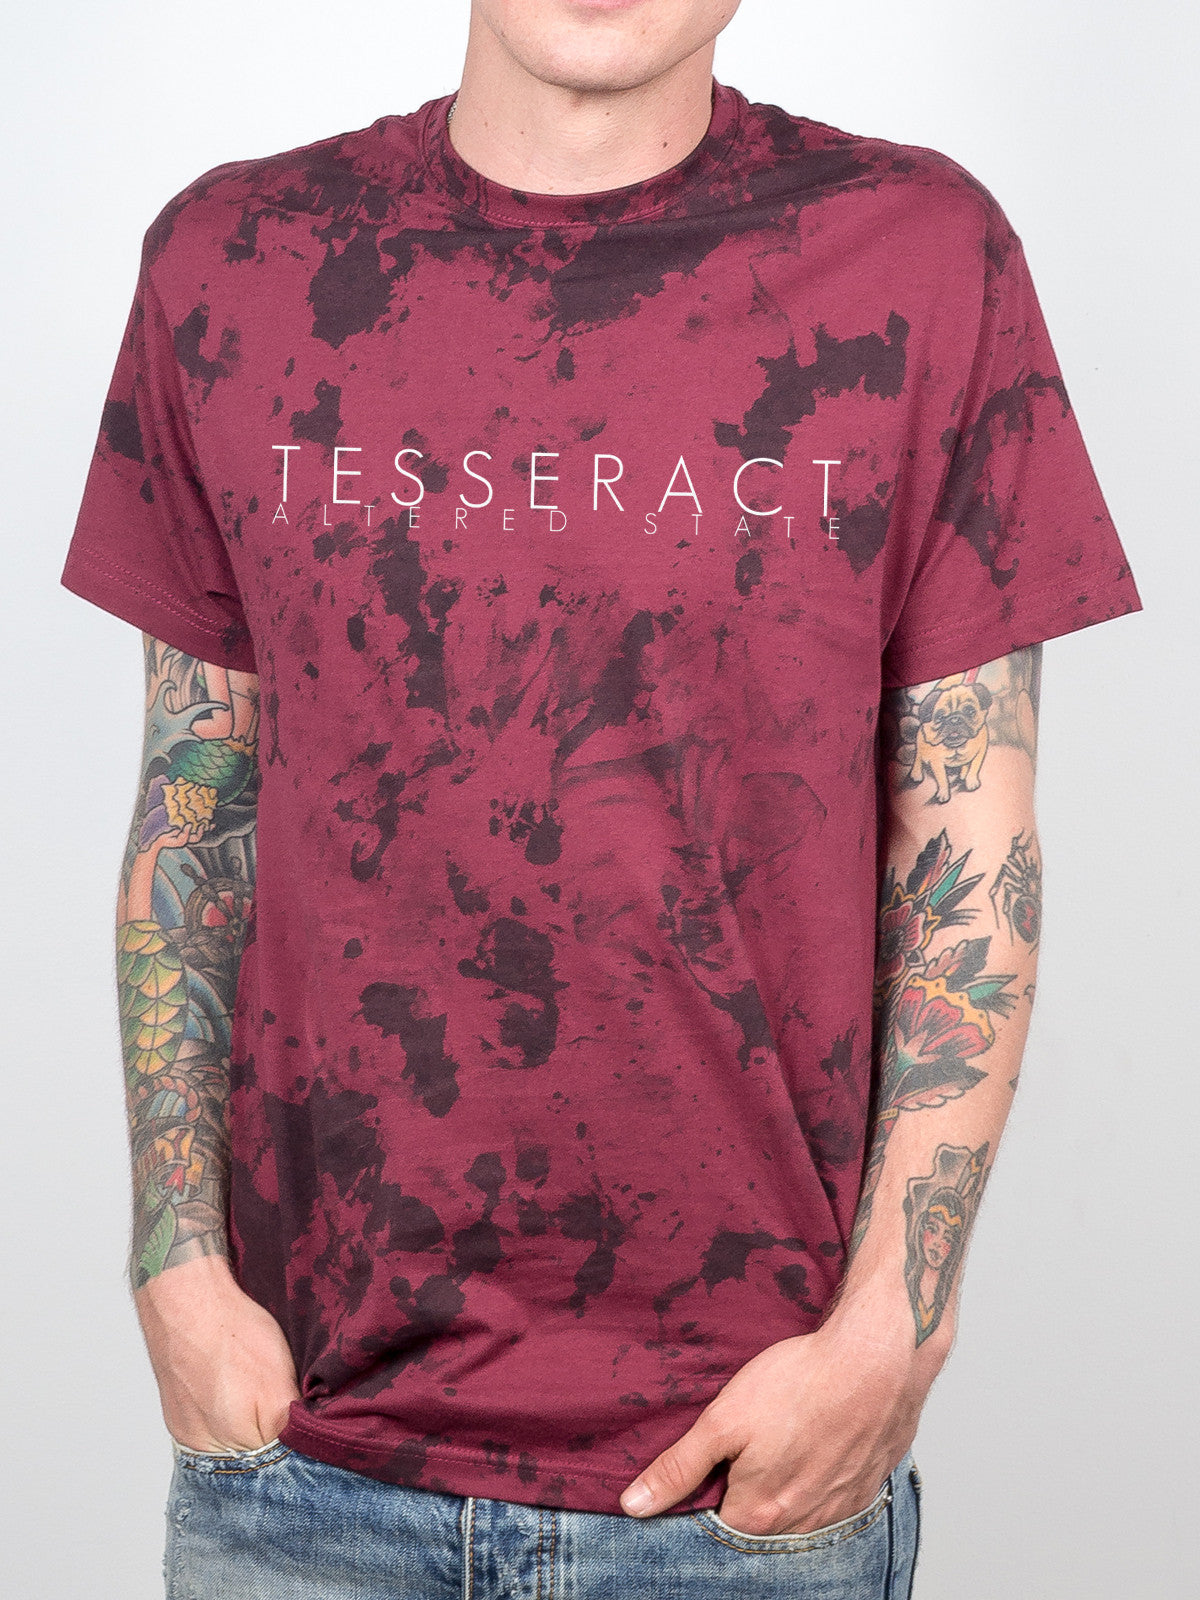 TesseracT - Altered State Dye Shirt - Merch Limited